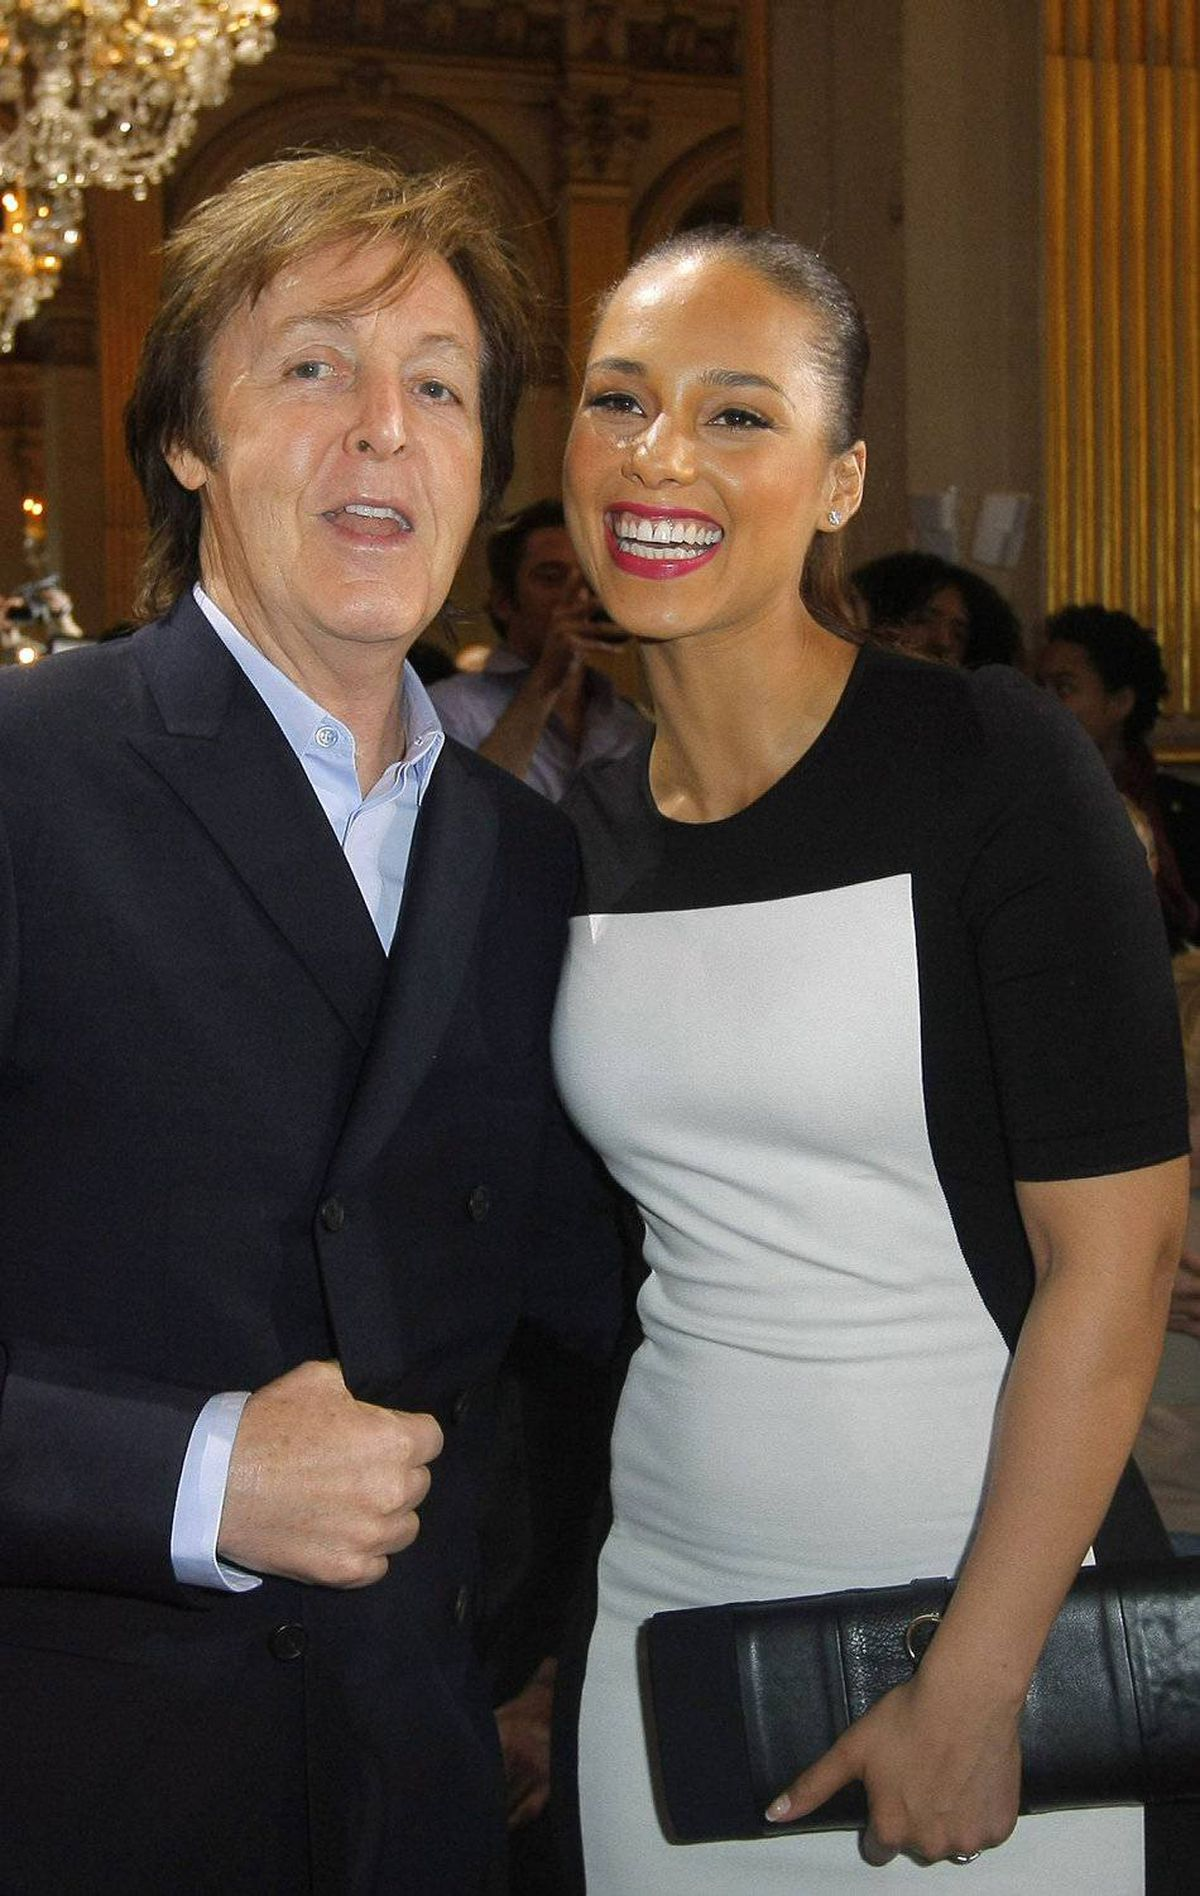 "Paul McCartney and Alicia Keys posed together for a photo before the Stella McCartney show on Monday morning. Sure, they were all smiles before hearing the runwayplay list, which included the electro-rap track I Fink U Freaky by Die Antwoord. ""Hey, you call thaaat music?!"""